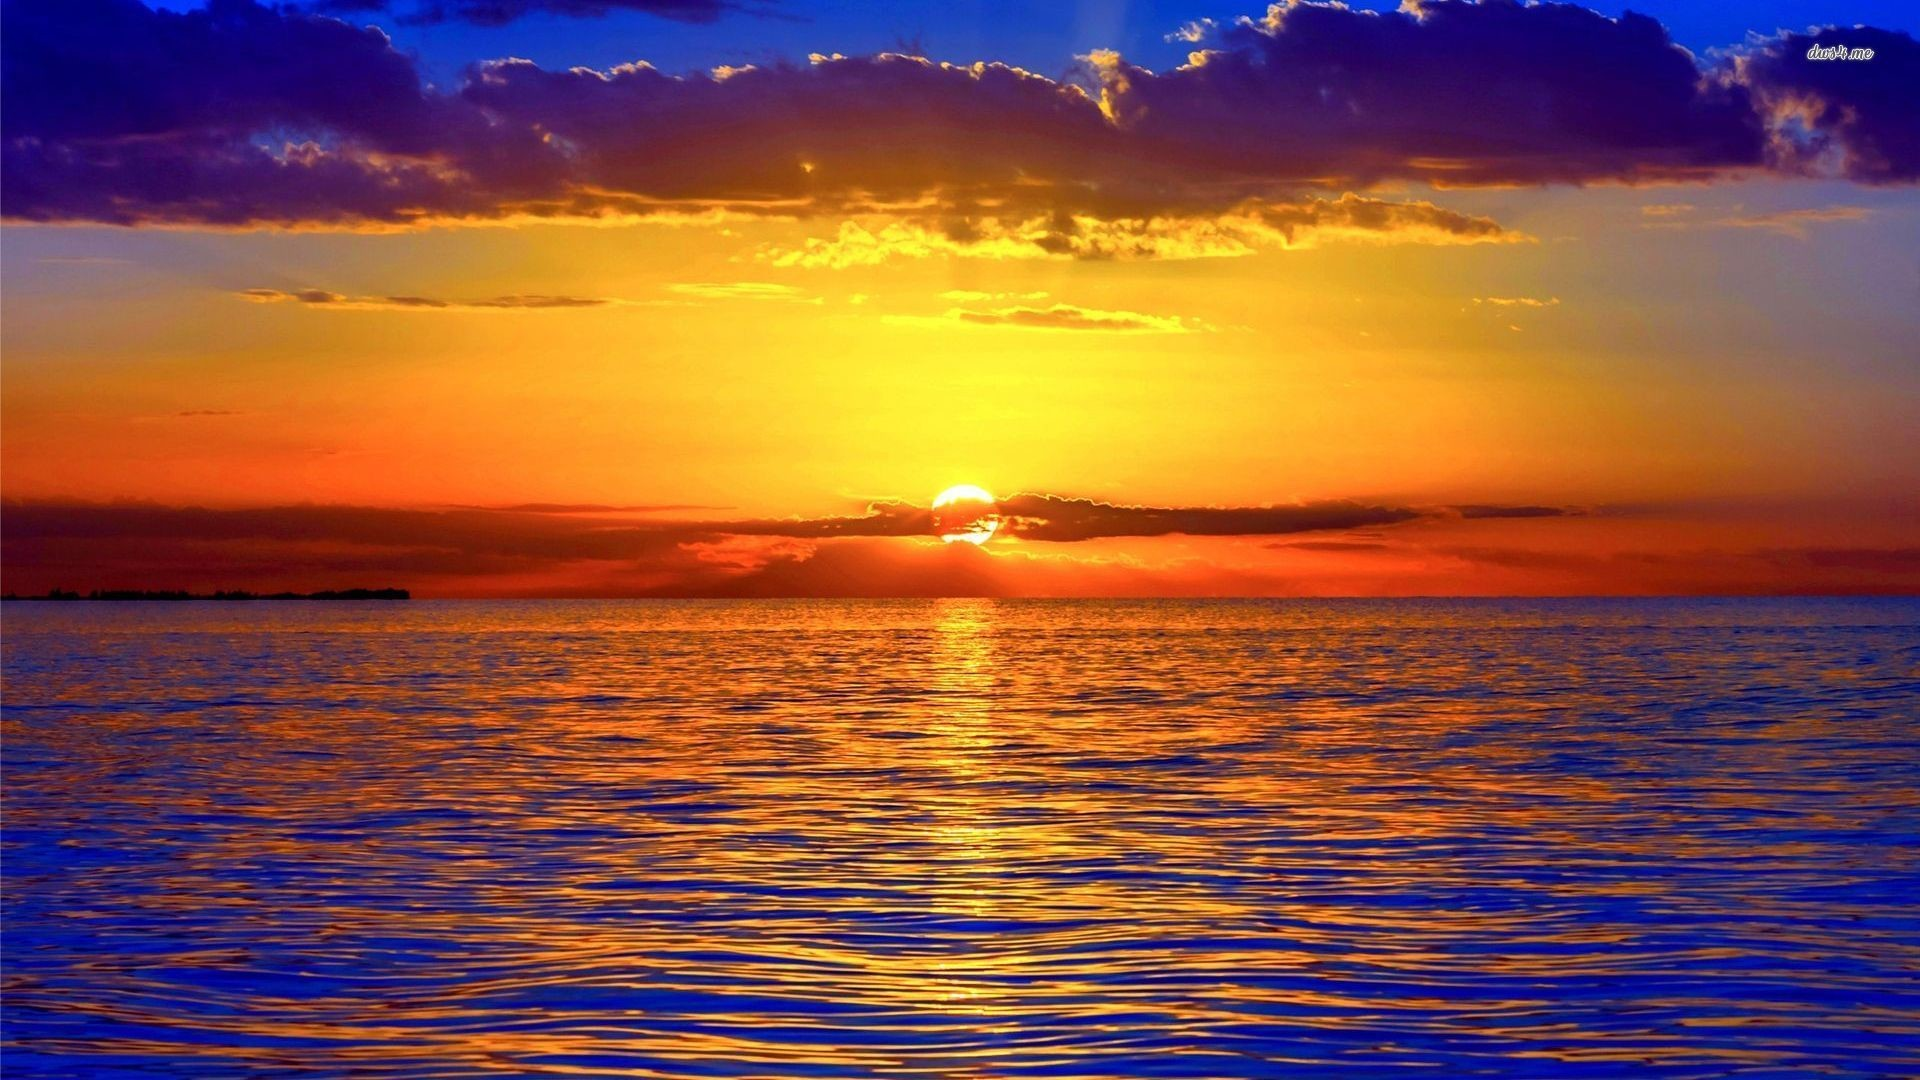 Colorful Beach Sunrise Hd Background 9 HD Wallpapers | Download Wallpaper |  Pinterest | Wallpaper and Wallpaper backgrounds